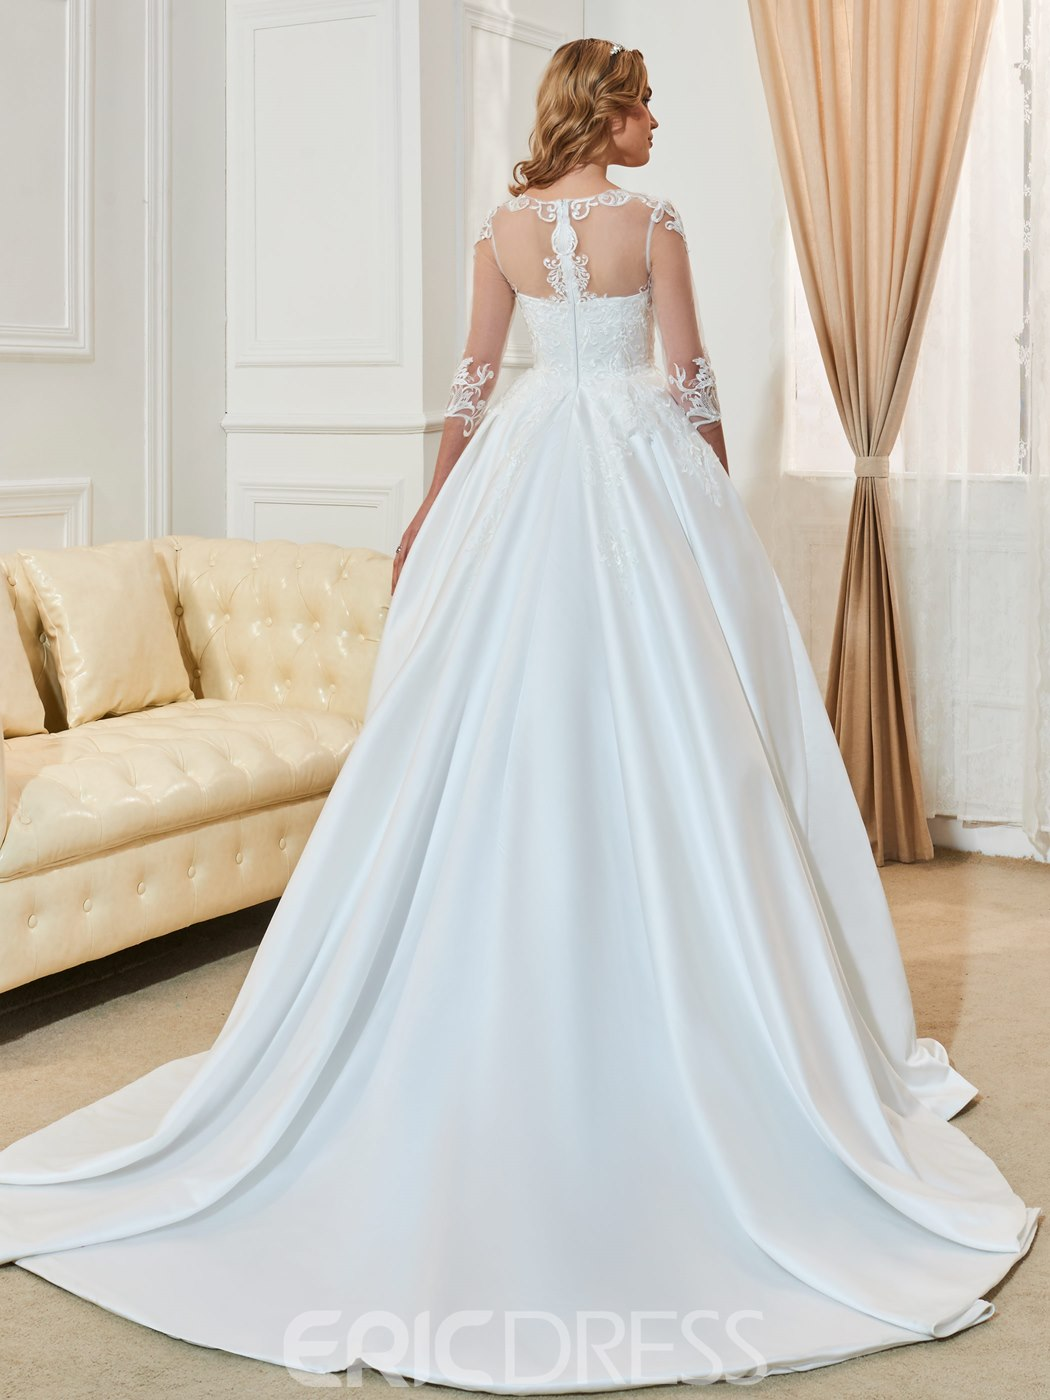 Ericdress Scoop Appliques 3/4 Length Sleeves Ball Gown Wedding Dress